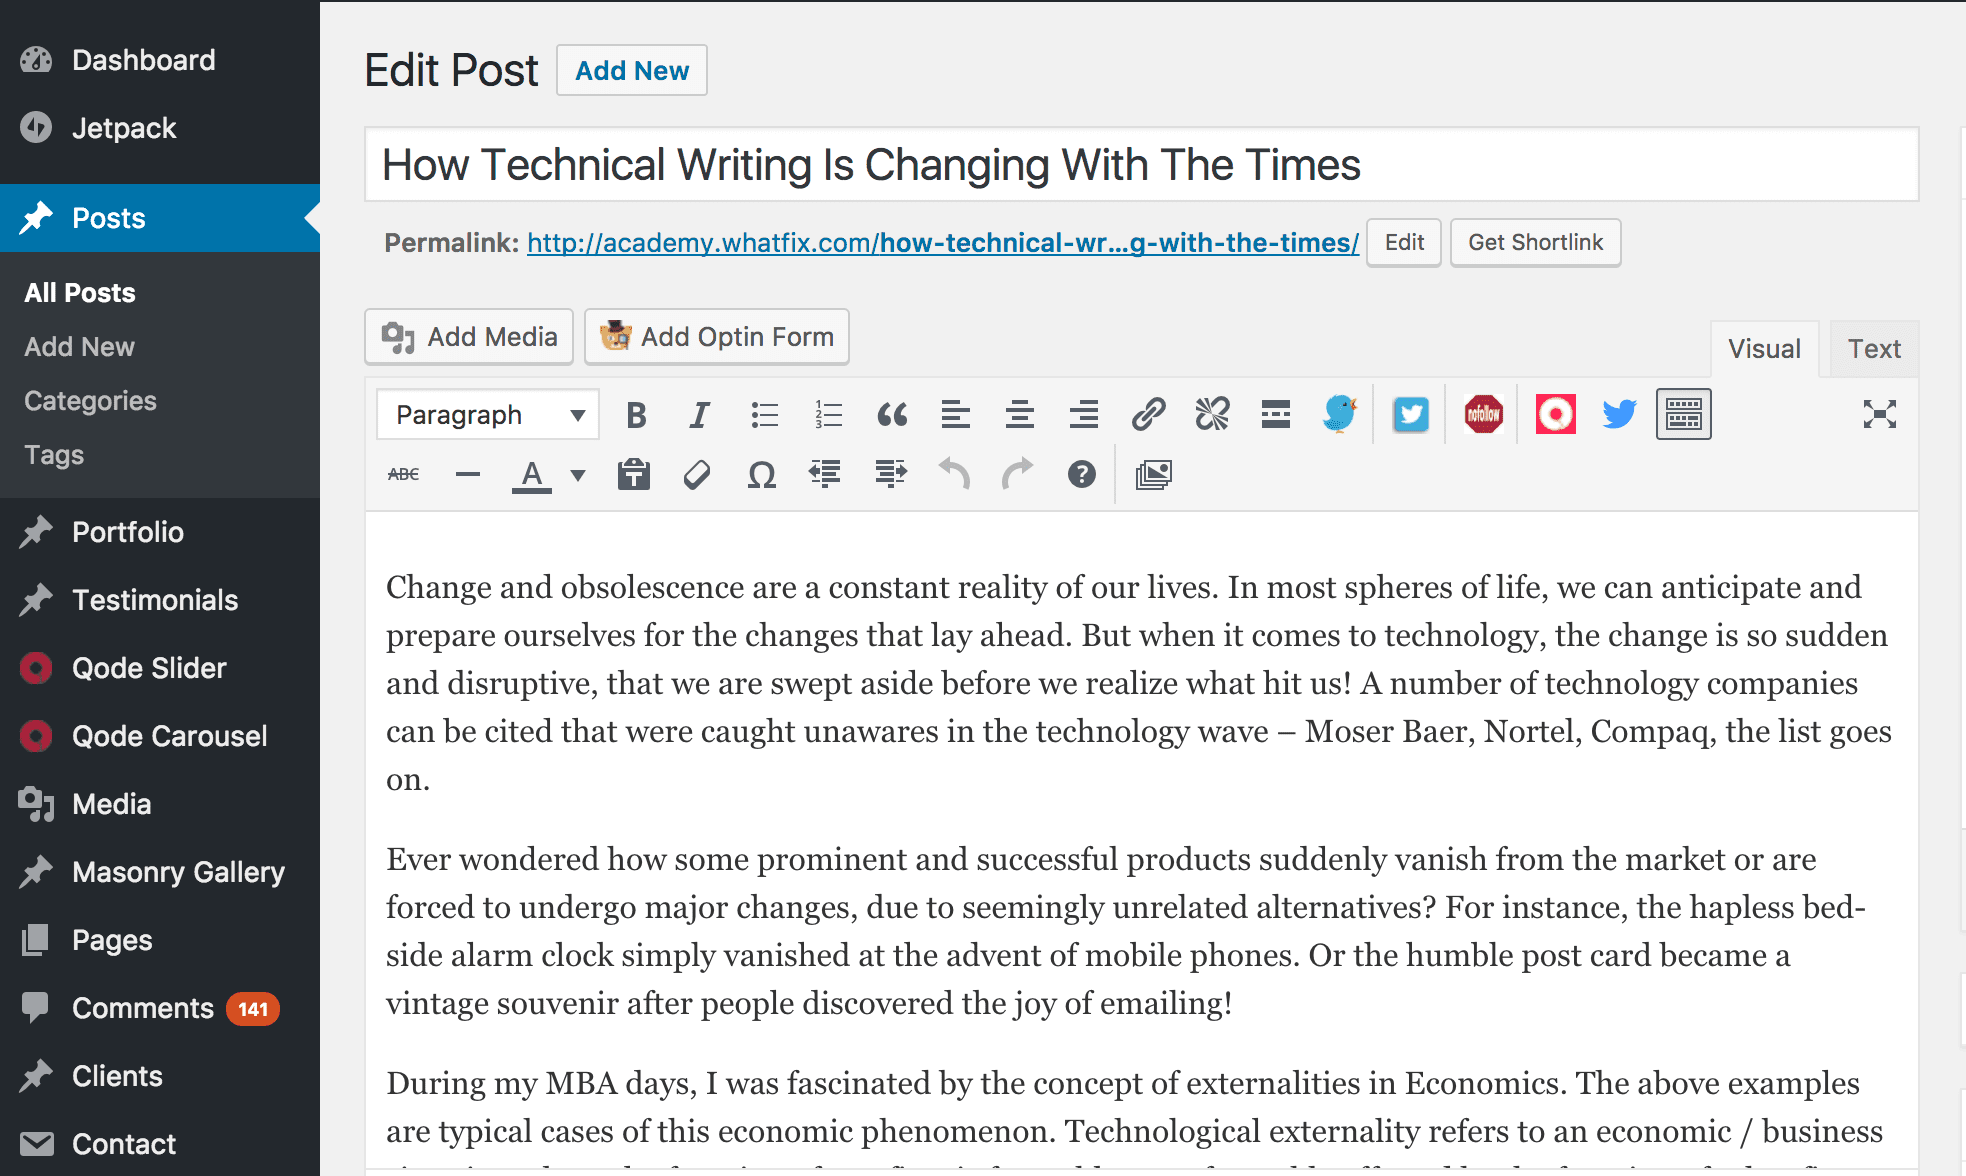 17 Awesome Technical Writing Tools For Documenting Information - WordPress